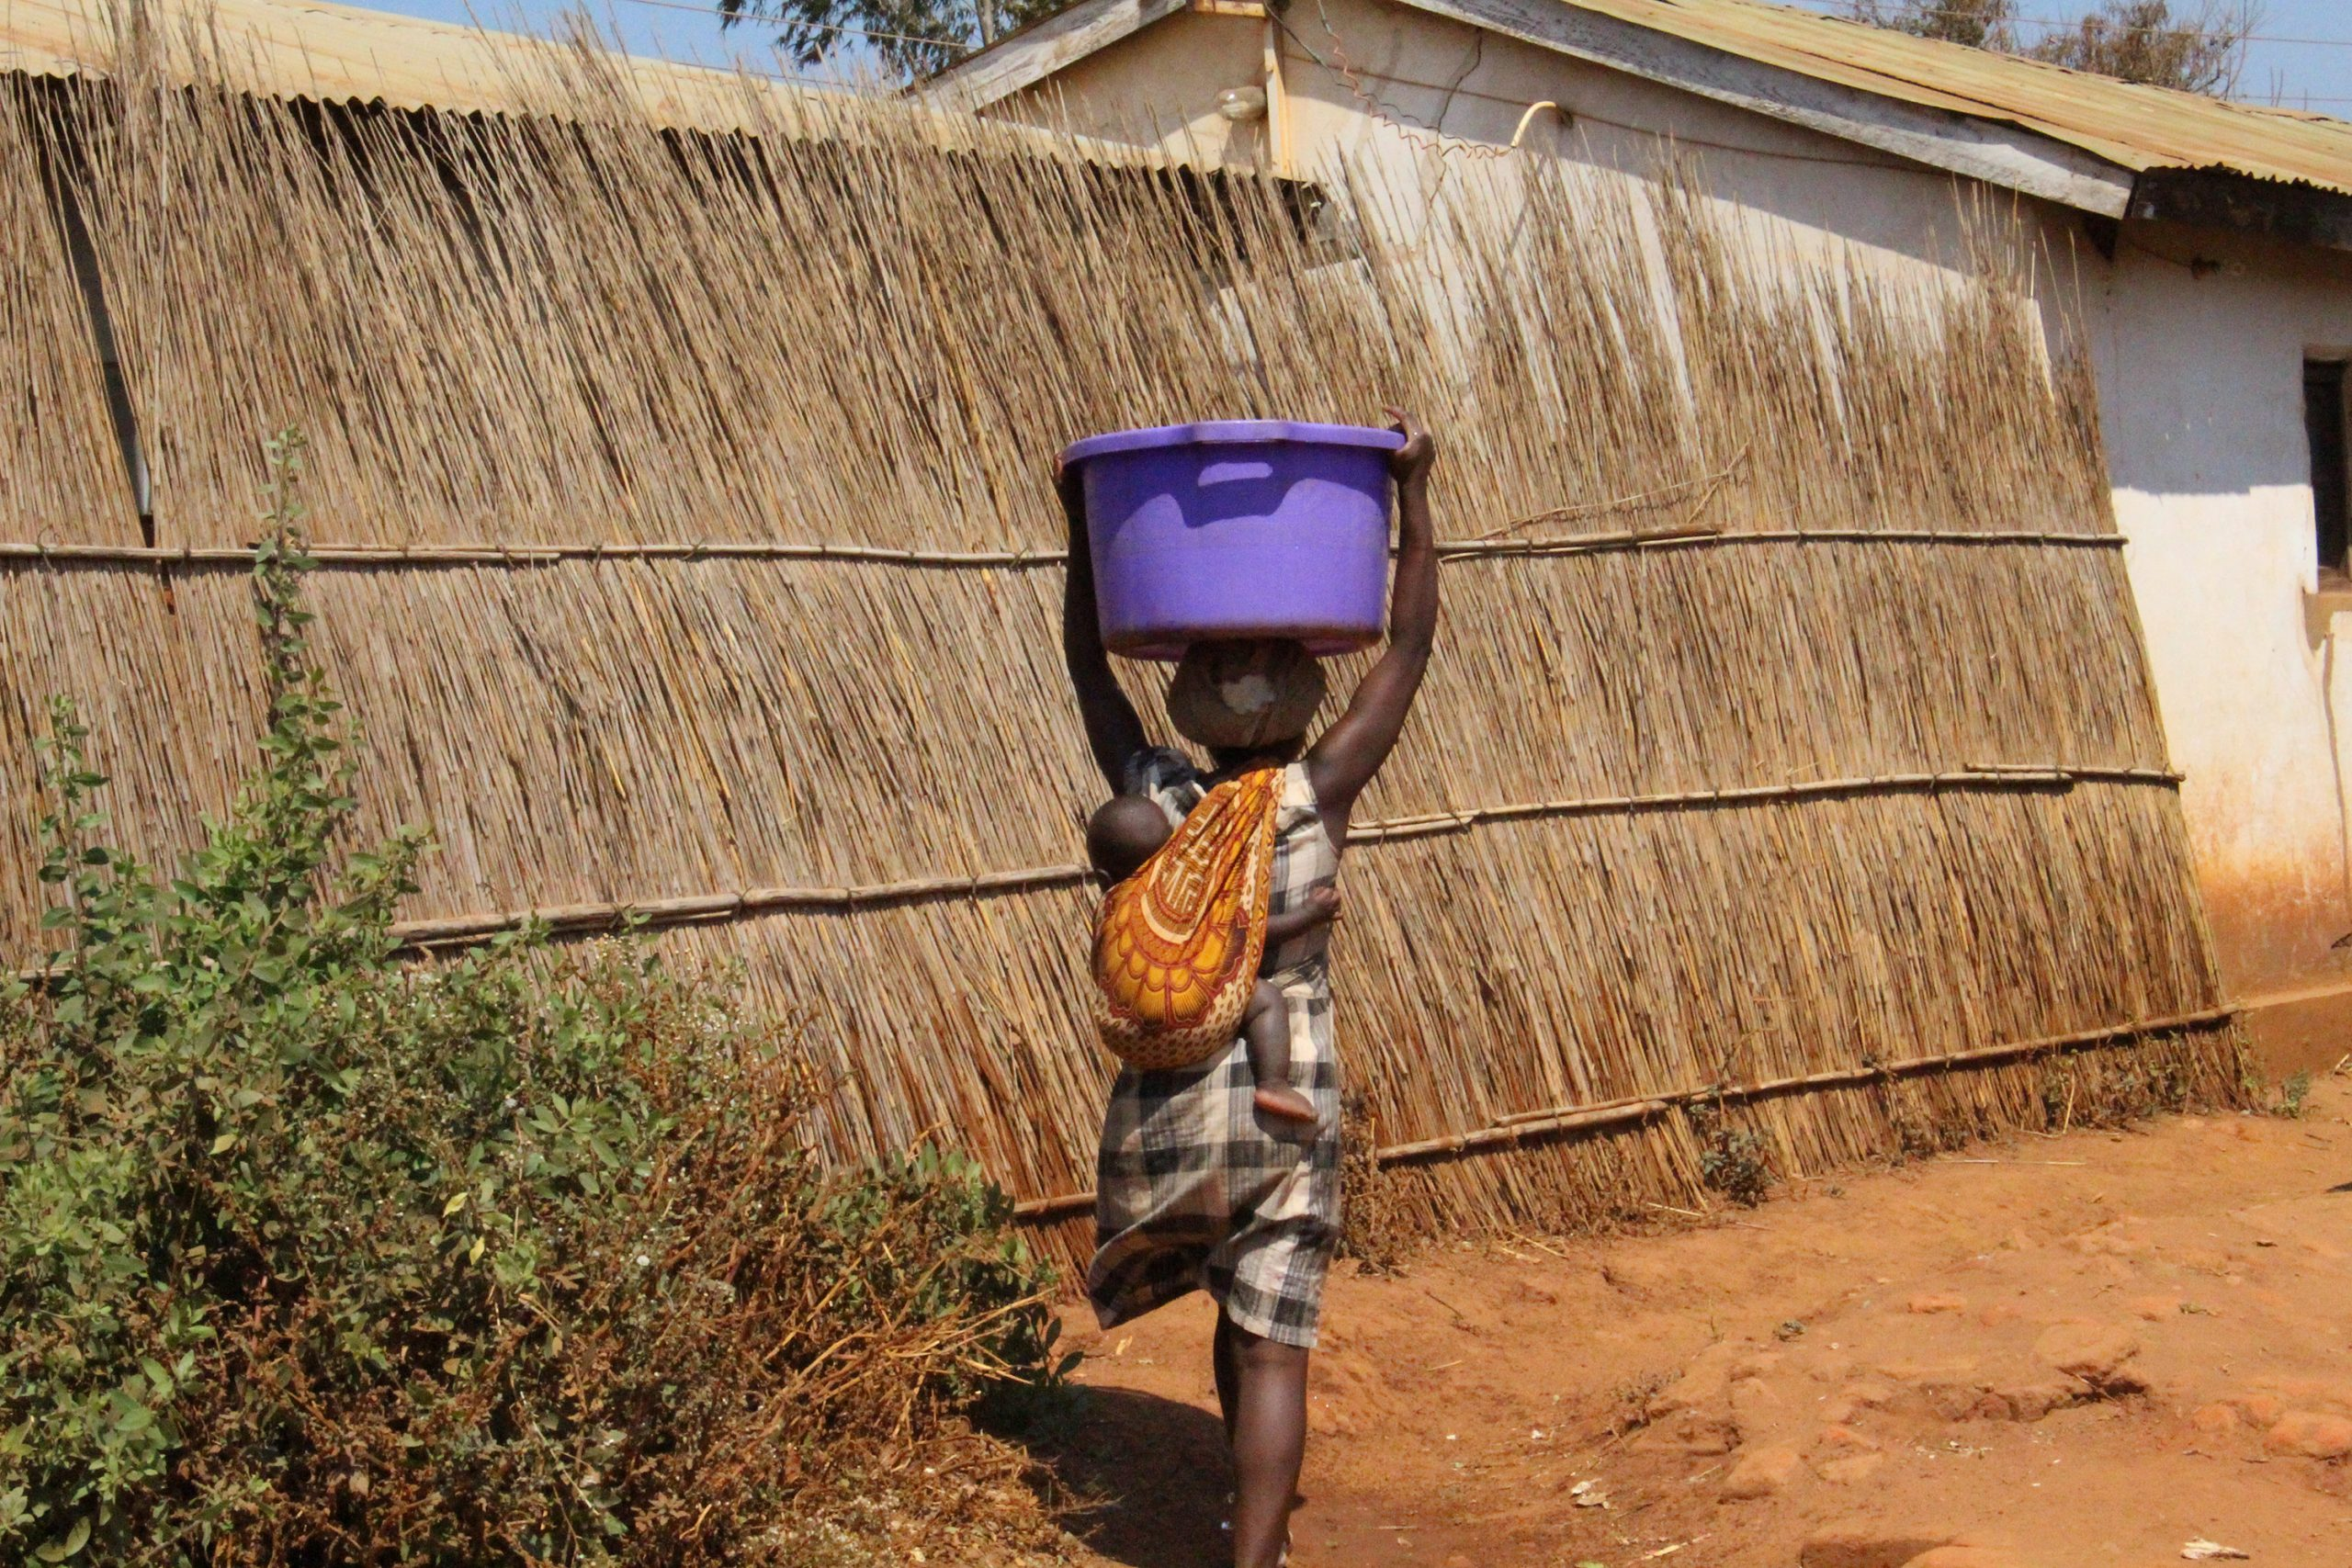 A woman in Malawi carries a 30-liter container of water on her head while also carrying an infant who is strapped to her back. Photo from Ellis Adjei Adams.